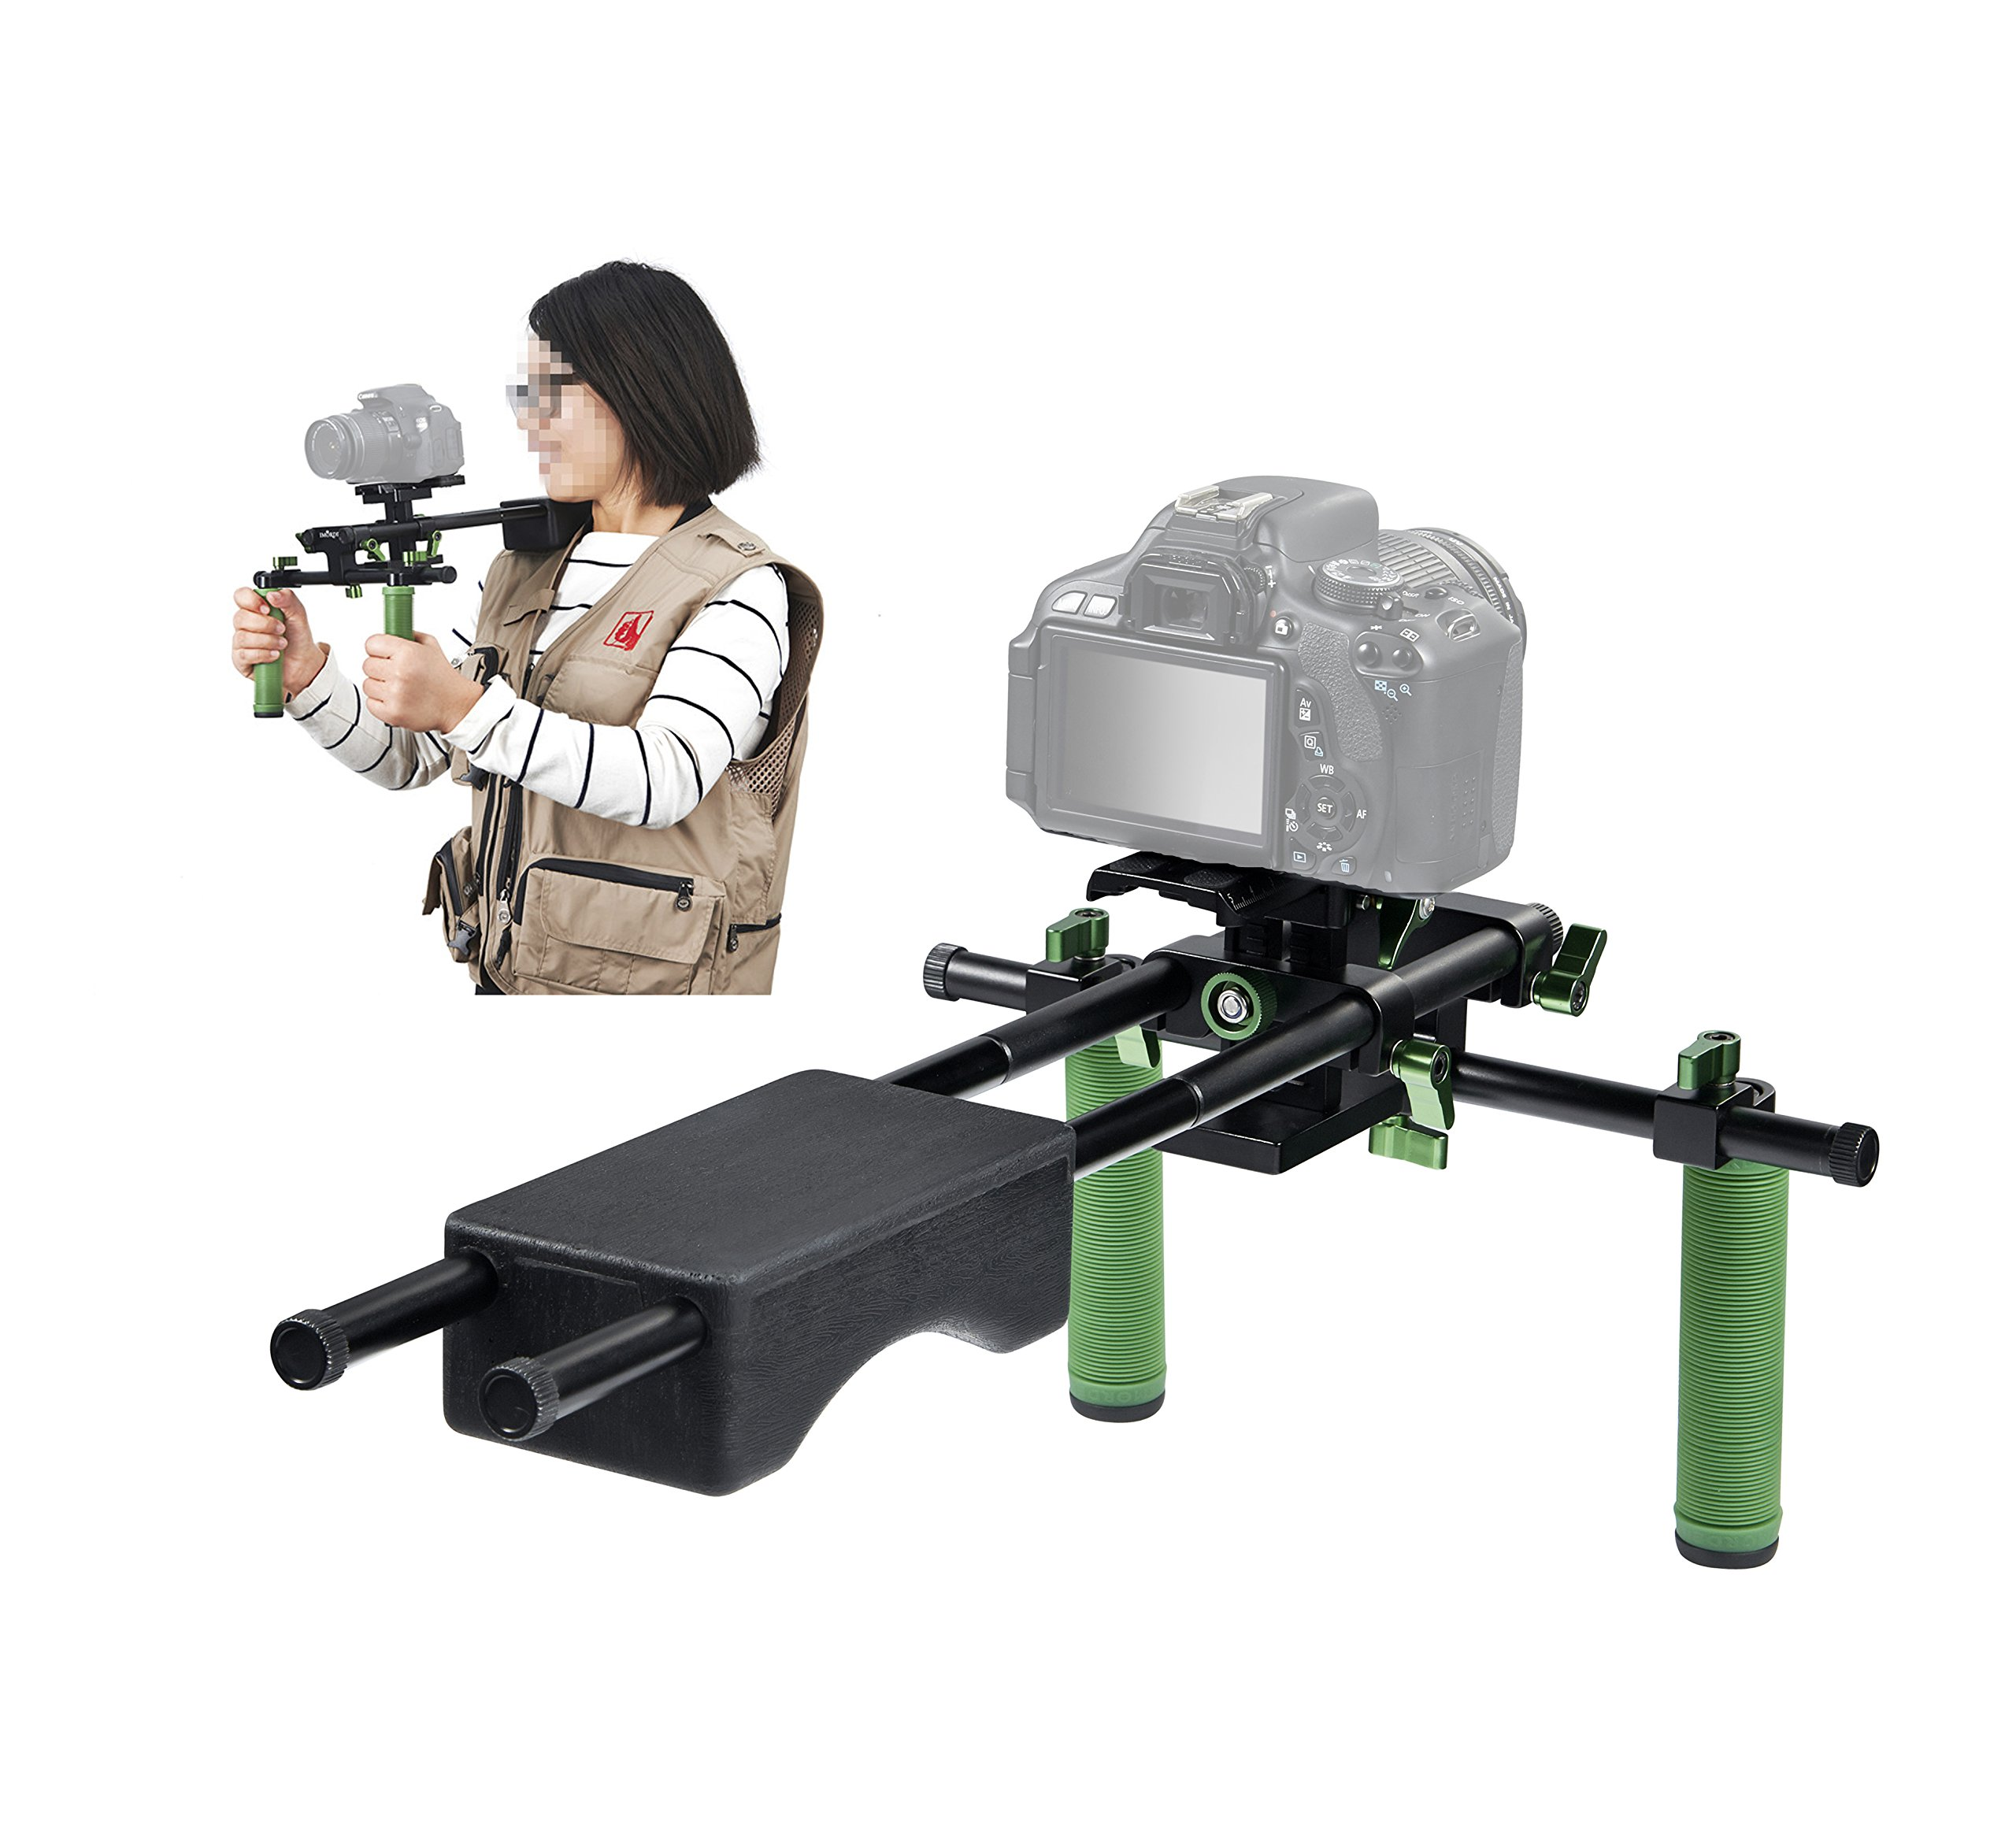 IMORDEN IR-04 Dual Grip Video Stabilization Shoulder Support Rig Filmaking Kit with 15mm Rods and Comfortable Shoulder Pad for BMPC, DSLR Sony Canon Nikon Cameras&Camcorders(up to 10kg/22lbs)